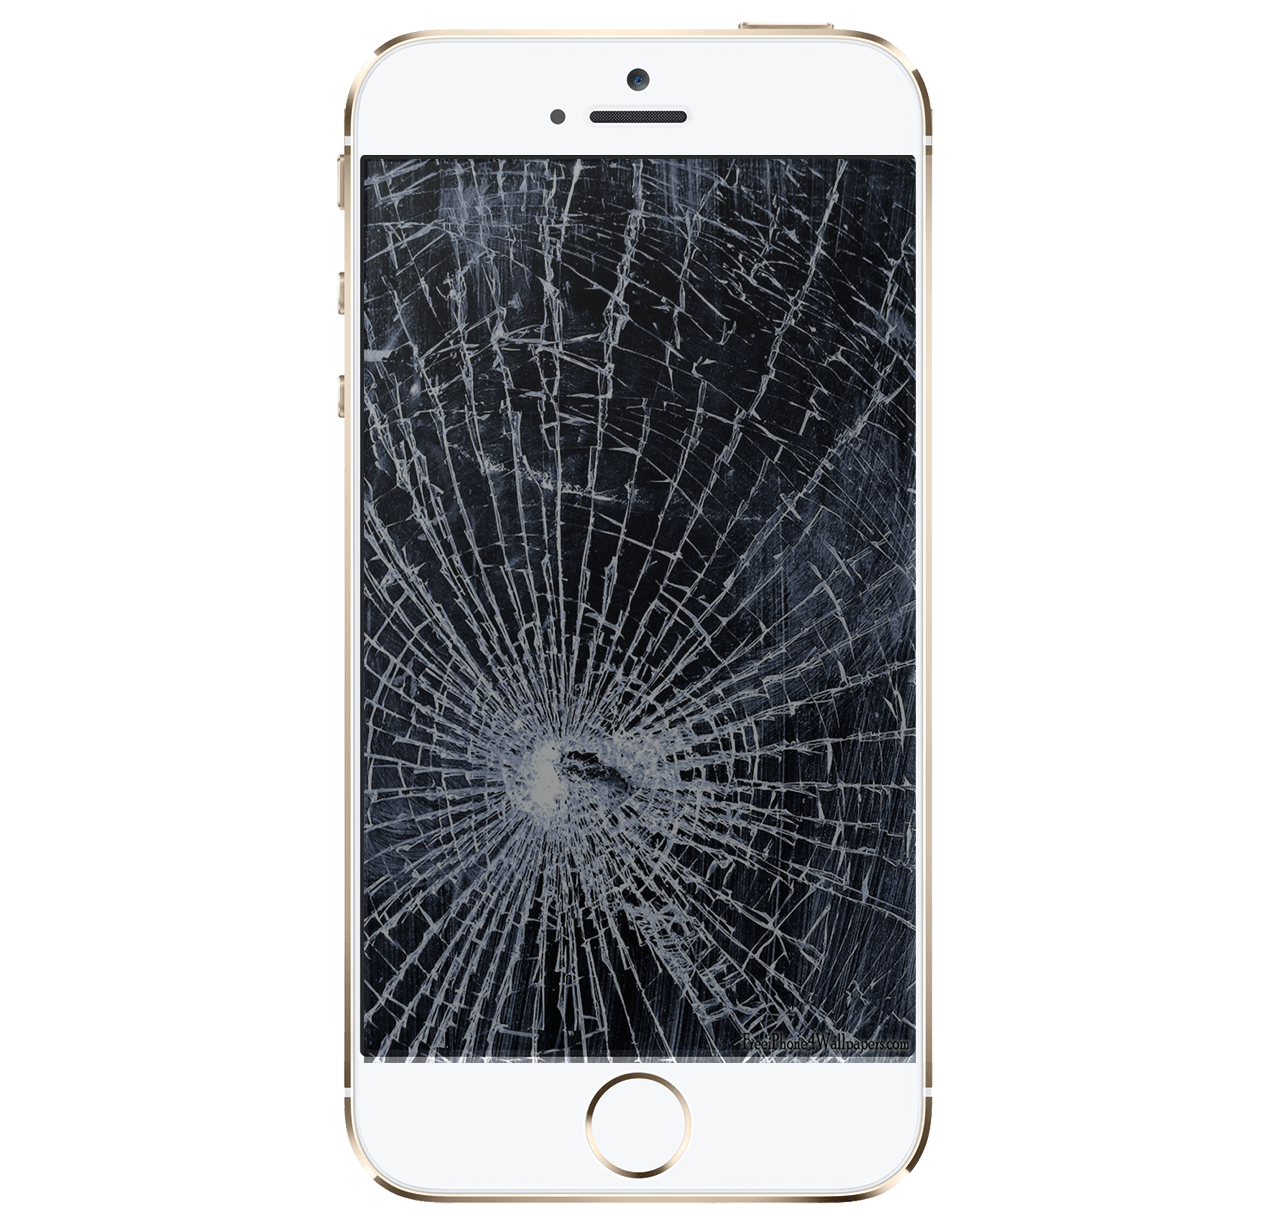 Cracked Screen Png | www.imgkid.com - The Image Kid Has It!